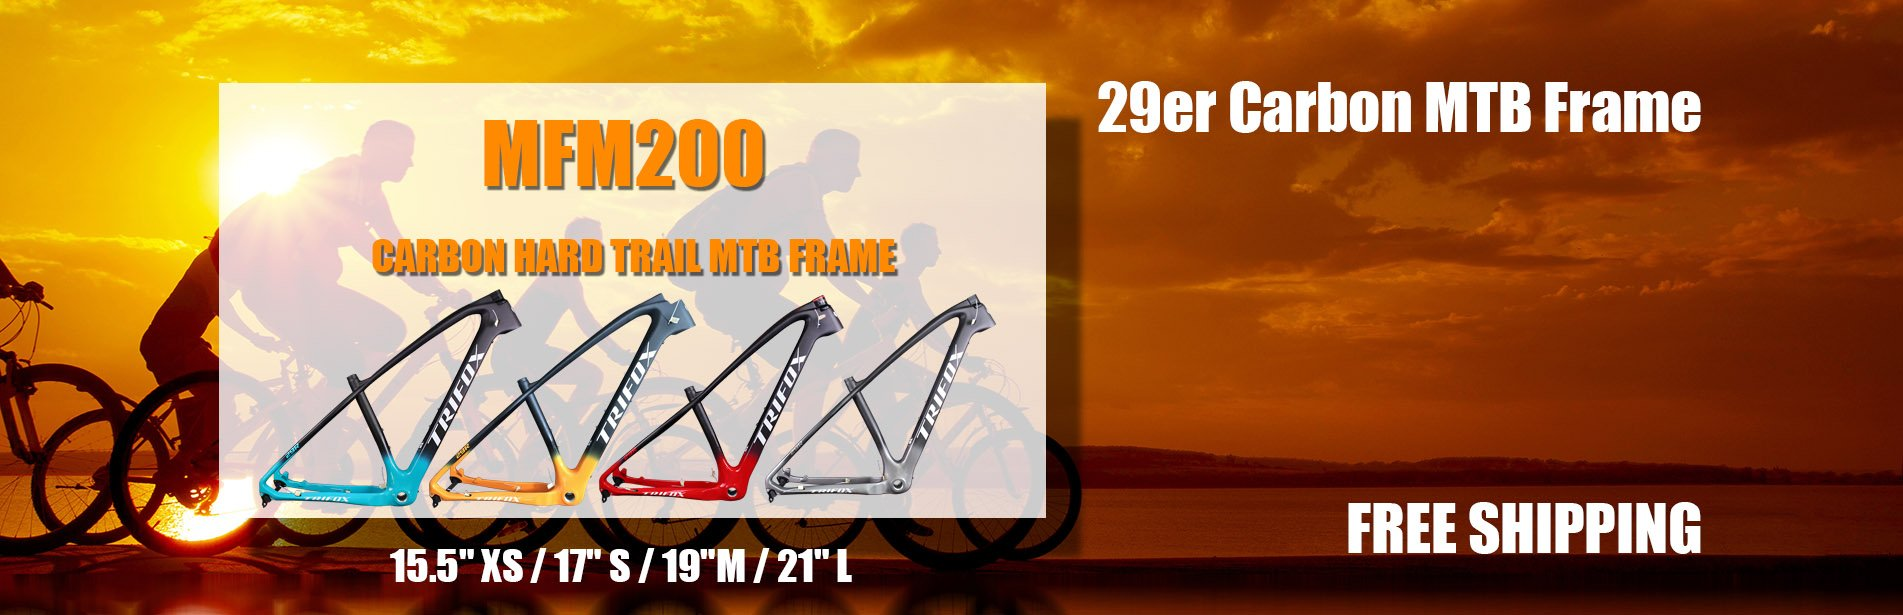 MFM200 Carbon Hard Trail MTB Frame